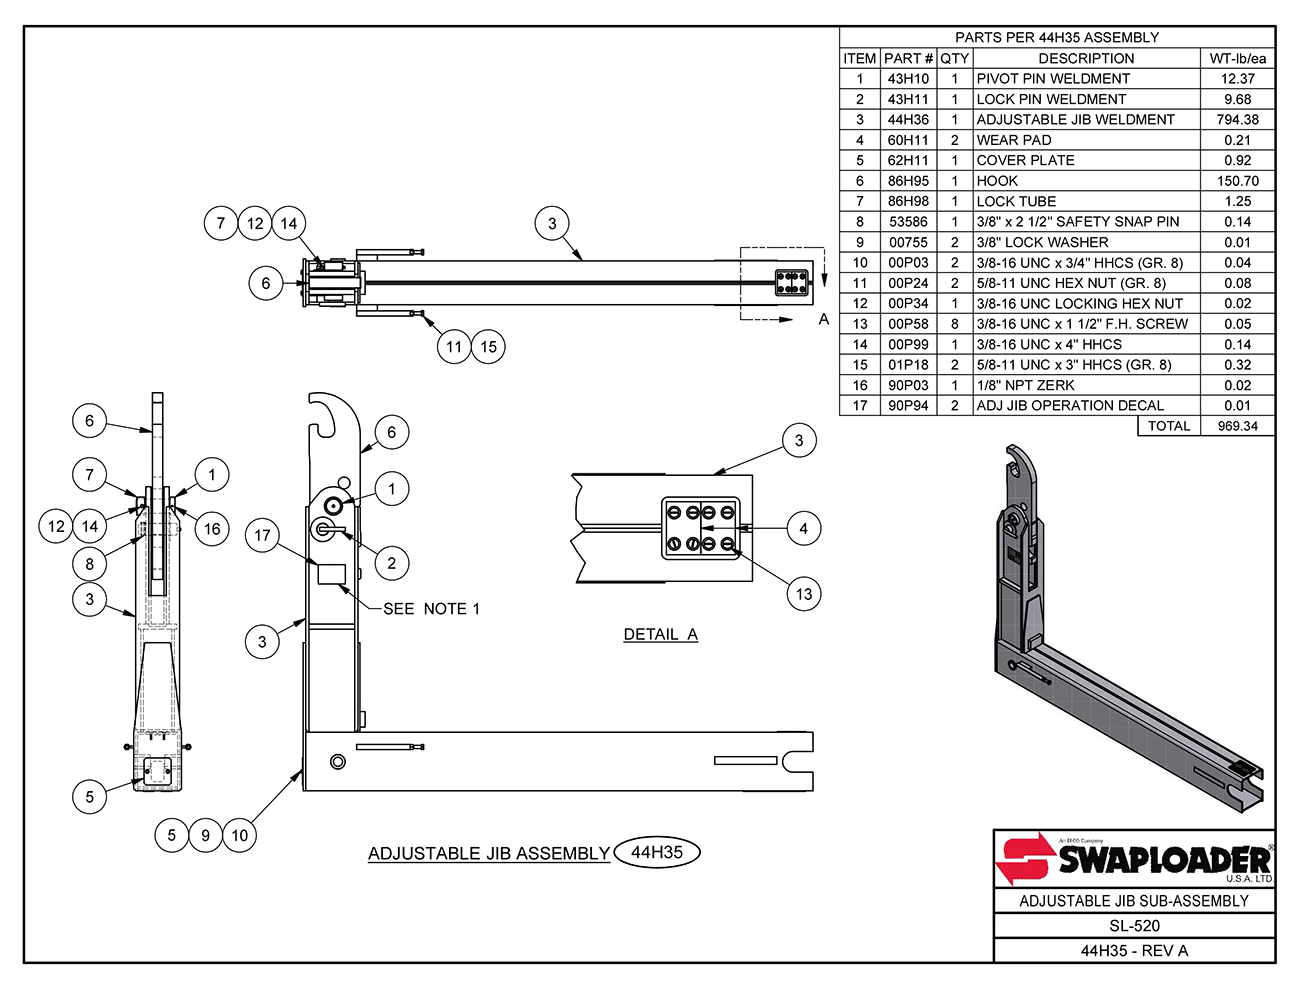 SL-520 Adjustable Jib Sub-Assembly Diagram